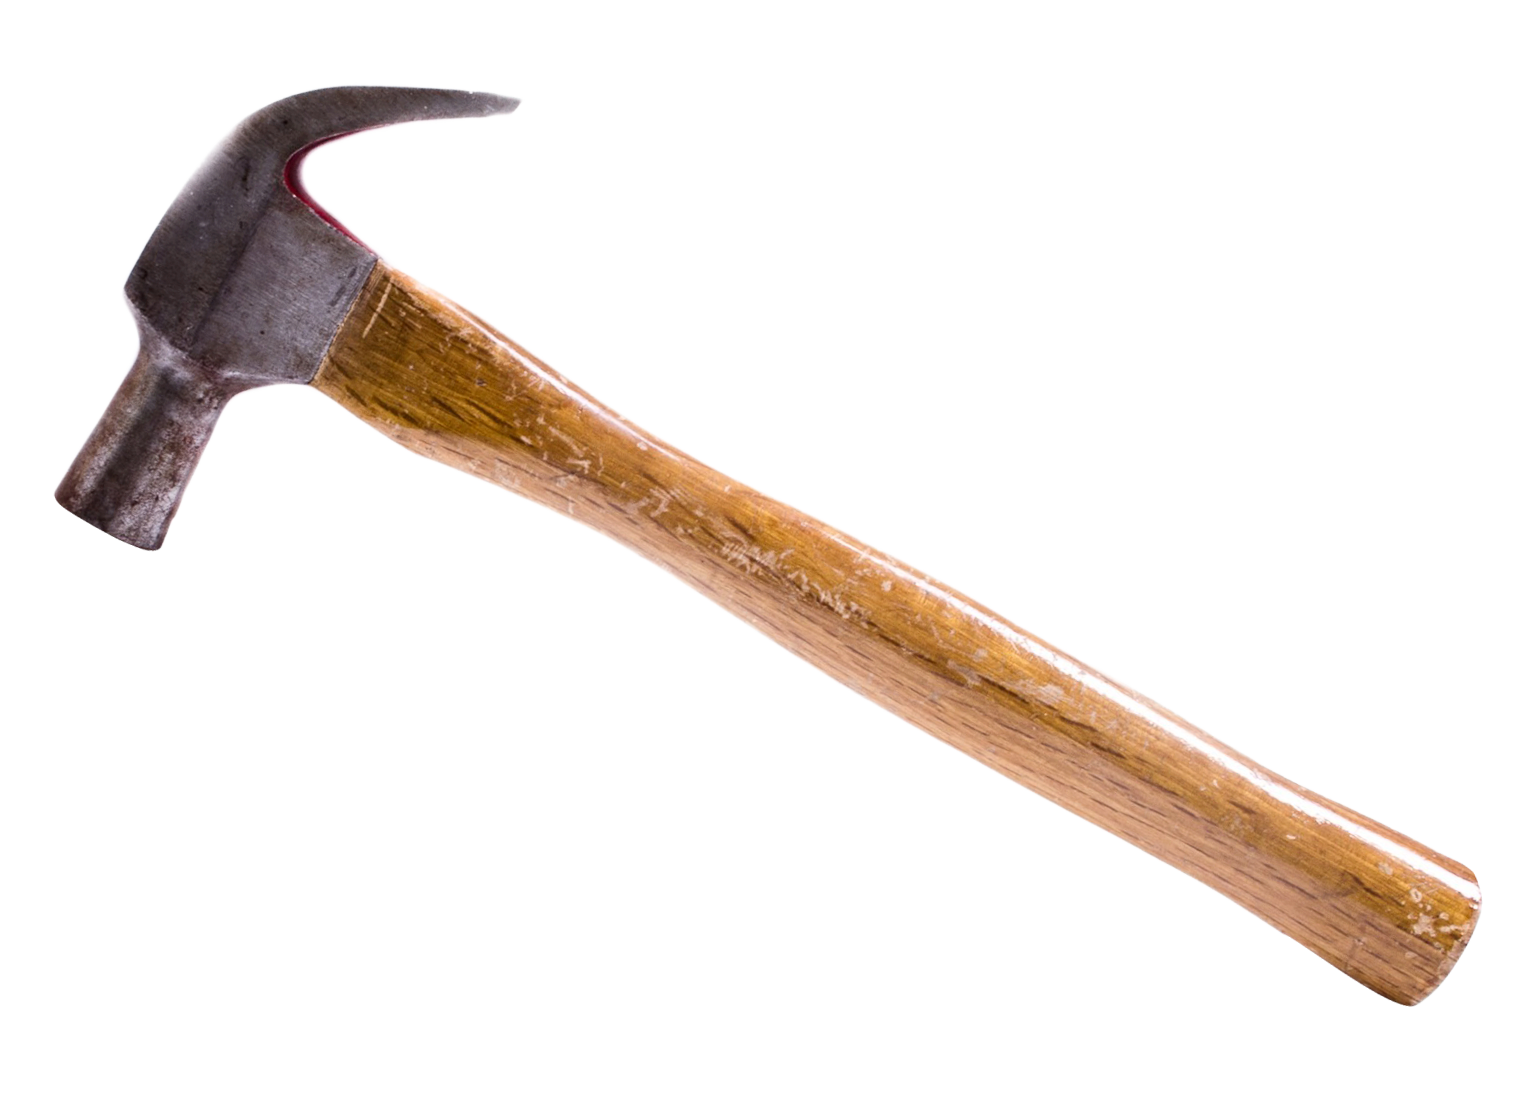 Hammer PNG - 9708